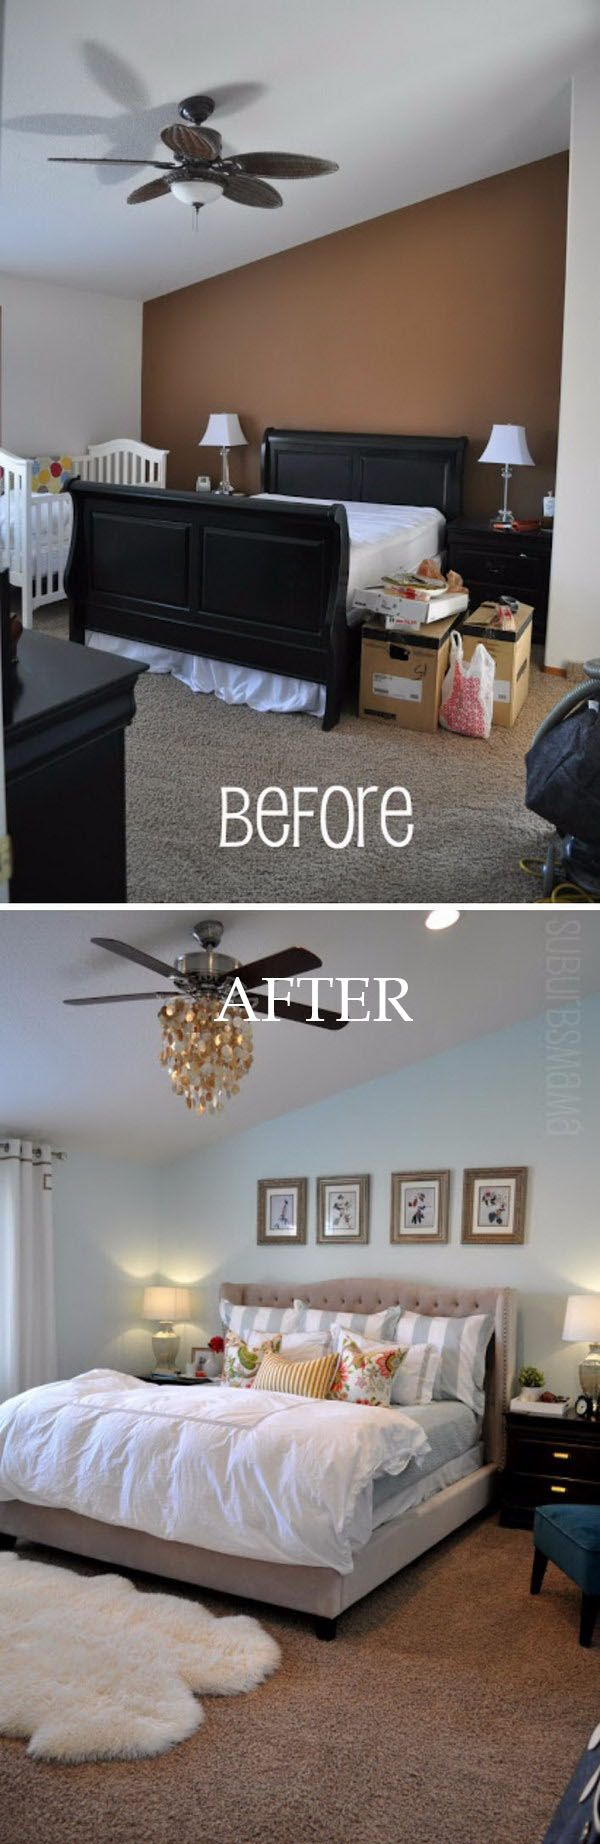 566 Best Bedroom Images On Pinterest Bedrooms Future House And How To Wire A Ceiling Rose In Simple Steps Craftomaniac Creative Ways Make Your Small Look Bigger Paint With Light Hues